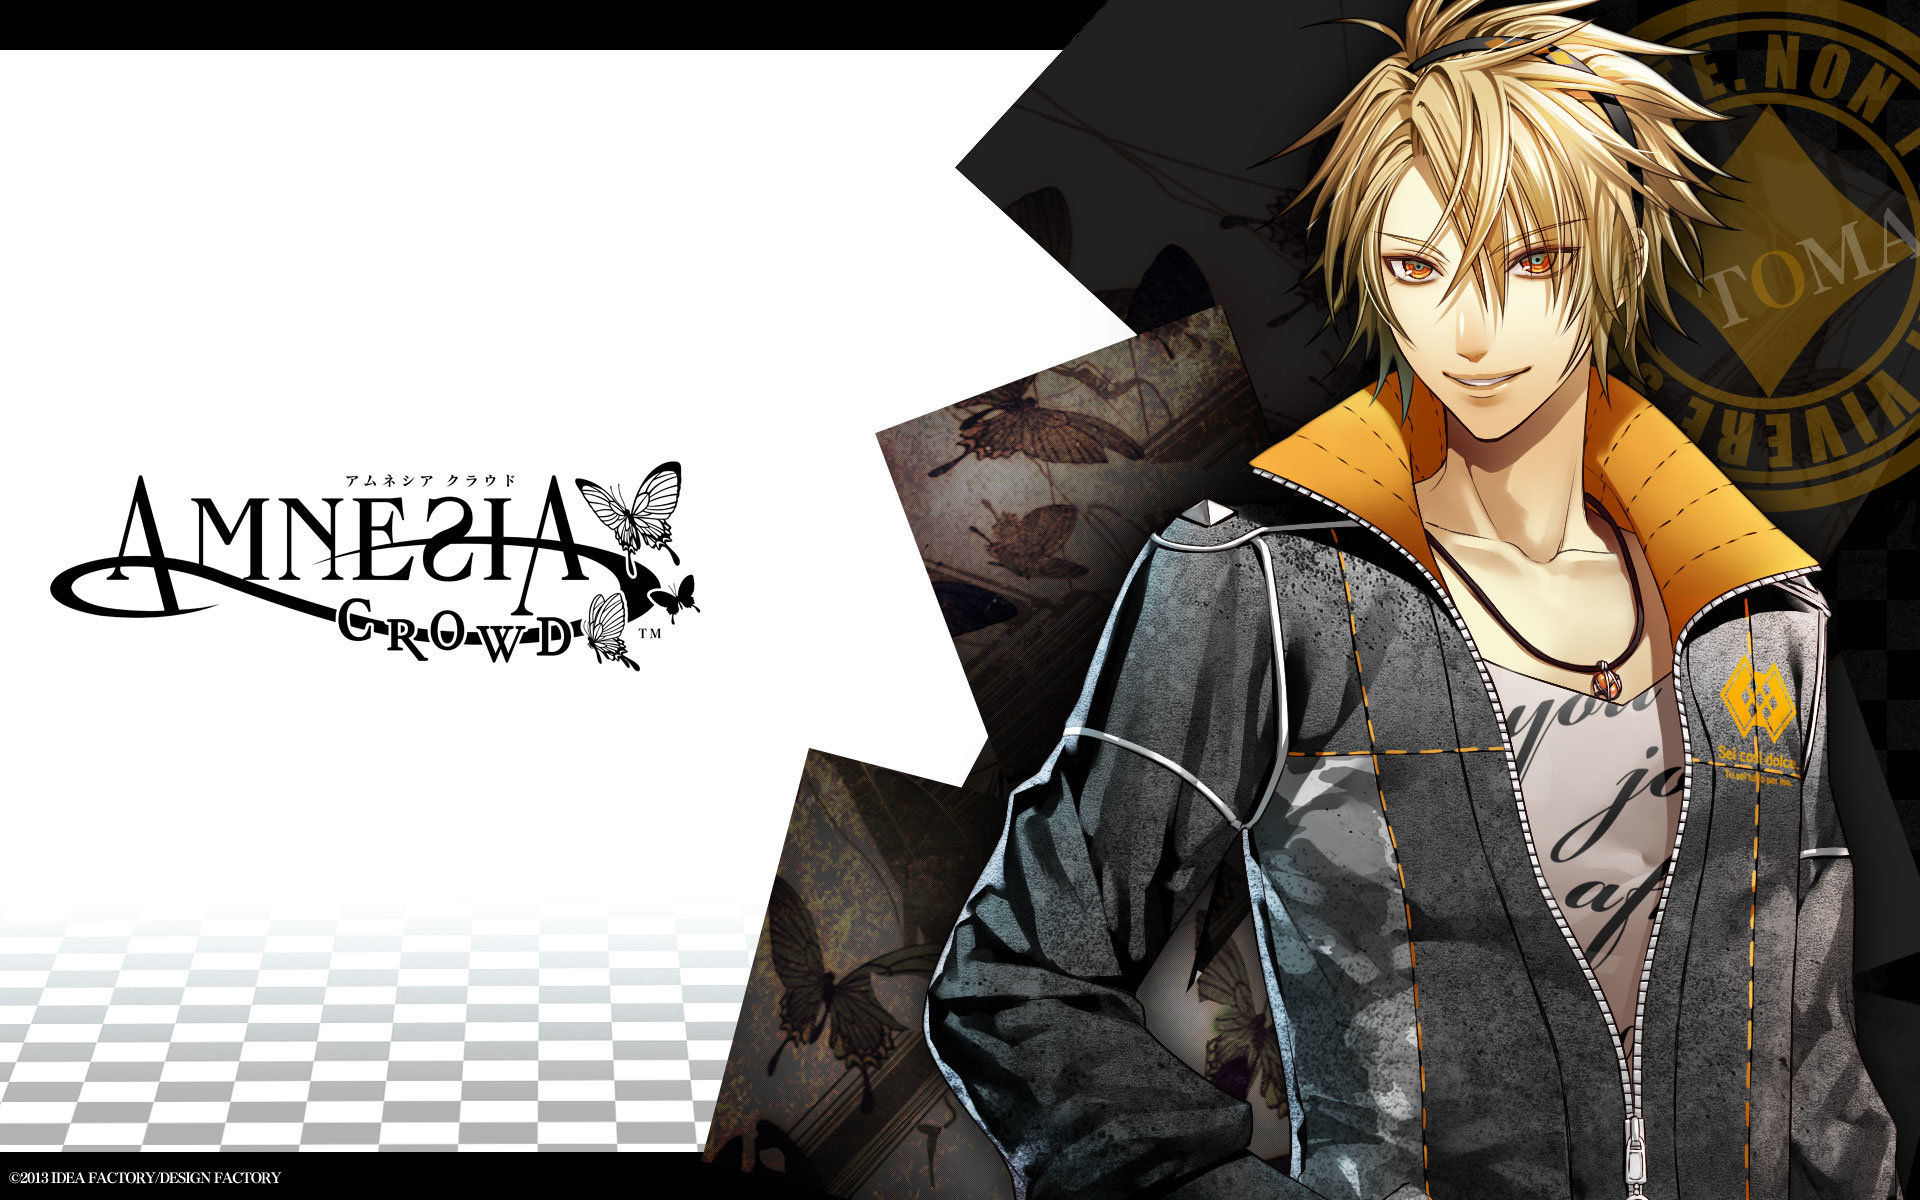 Free Amnesia high quality wallpaper ID:115282 for hd 1920x1200 desktop